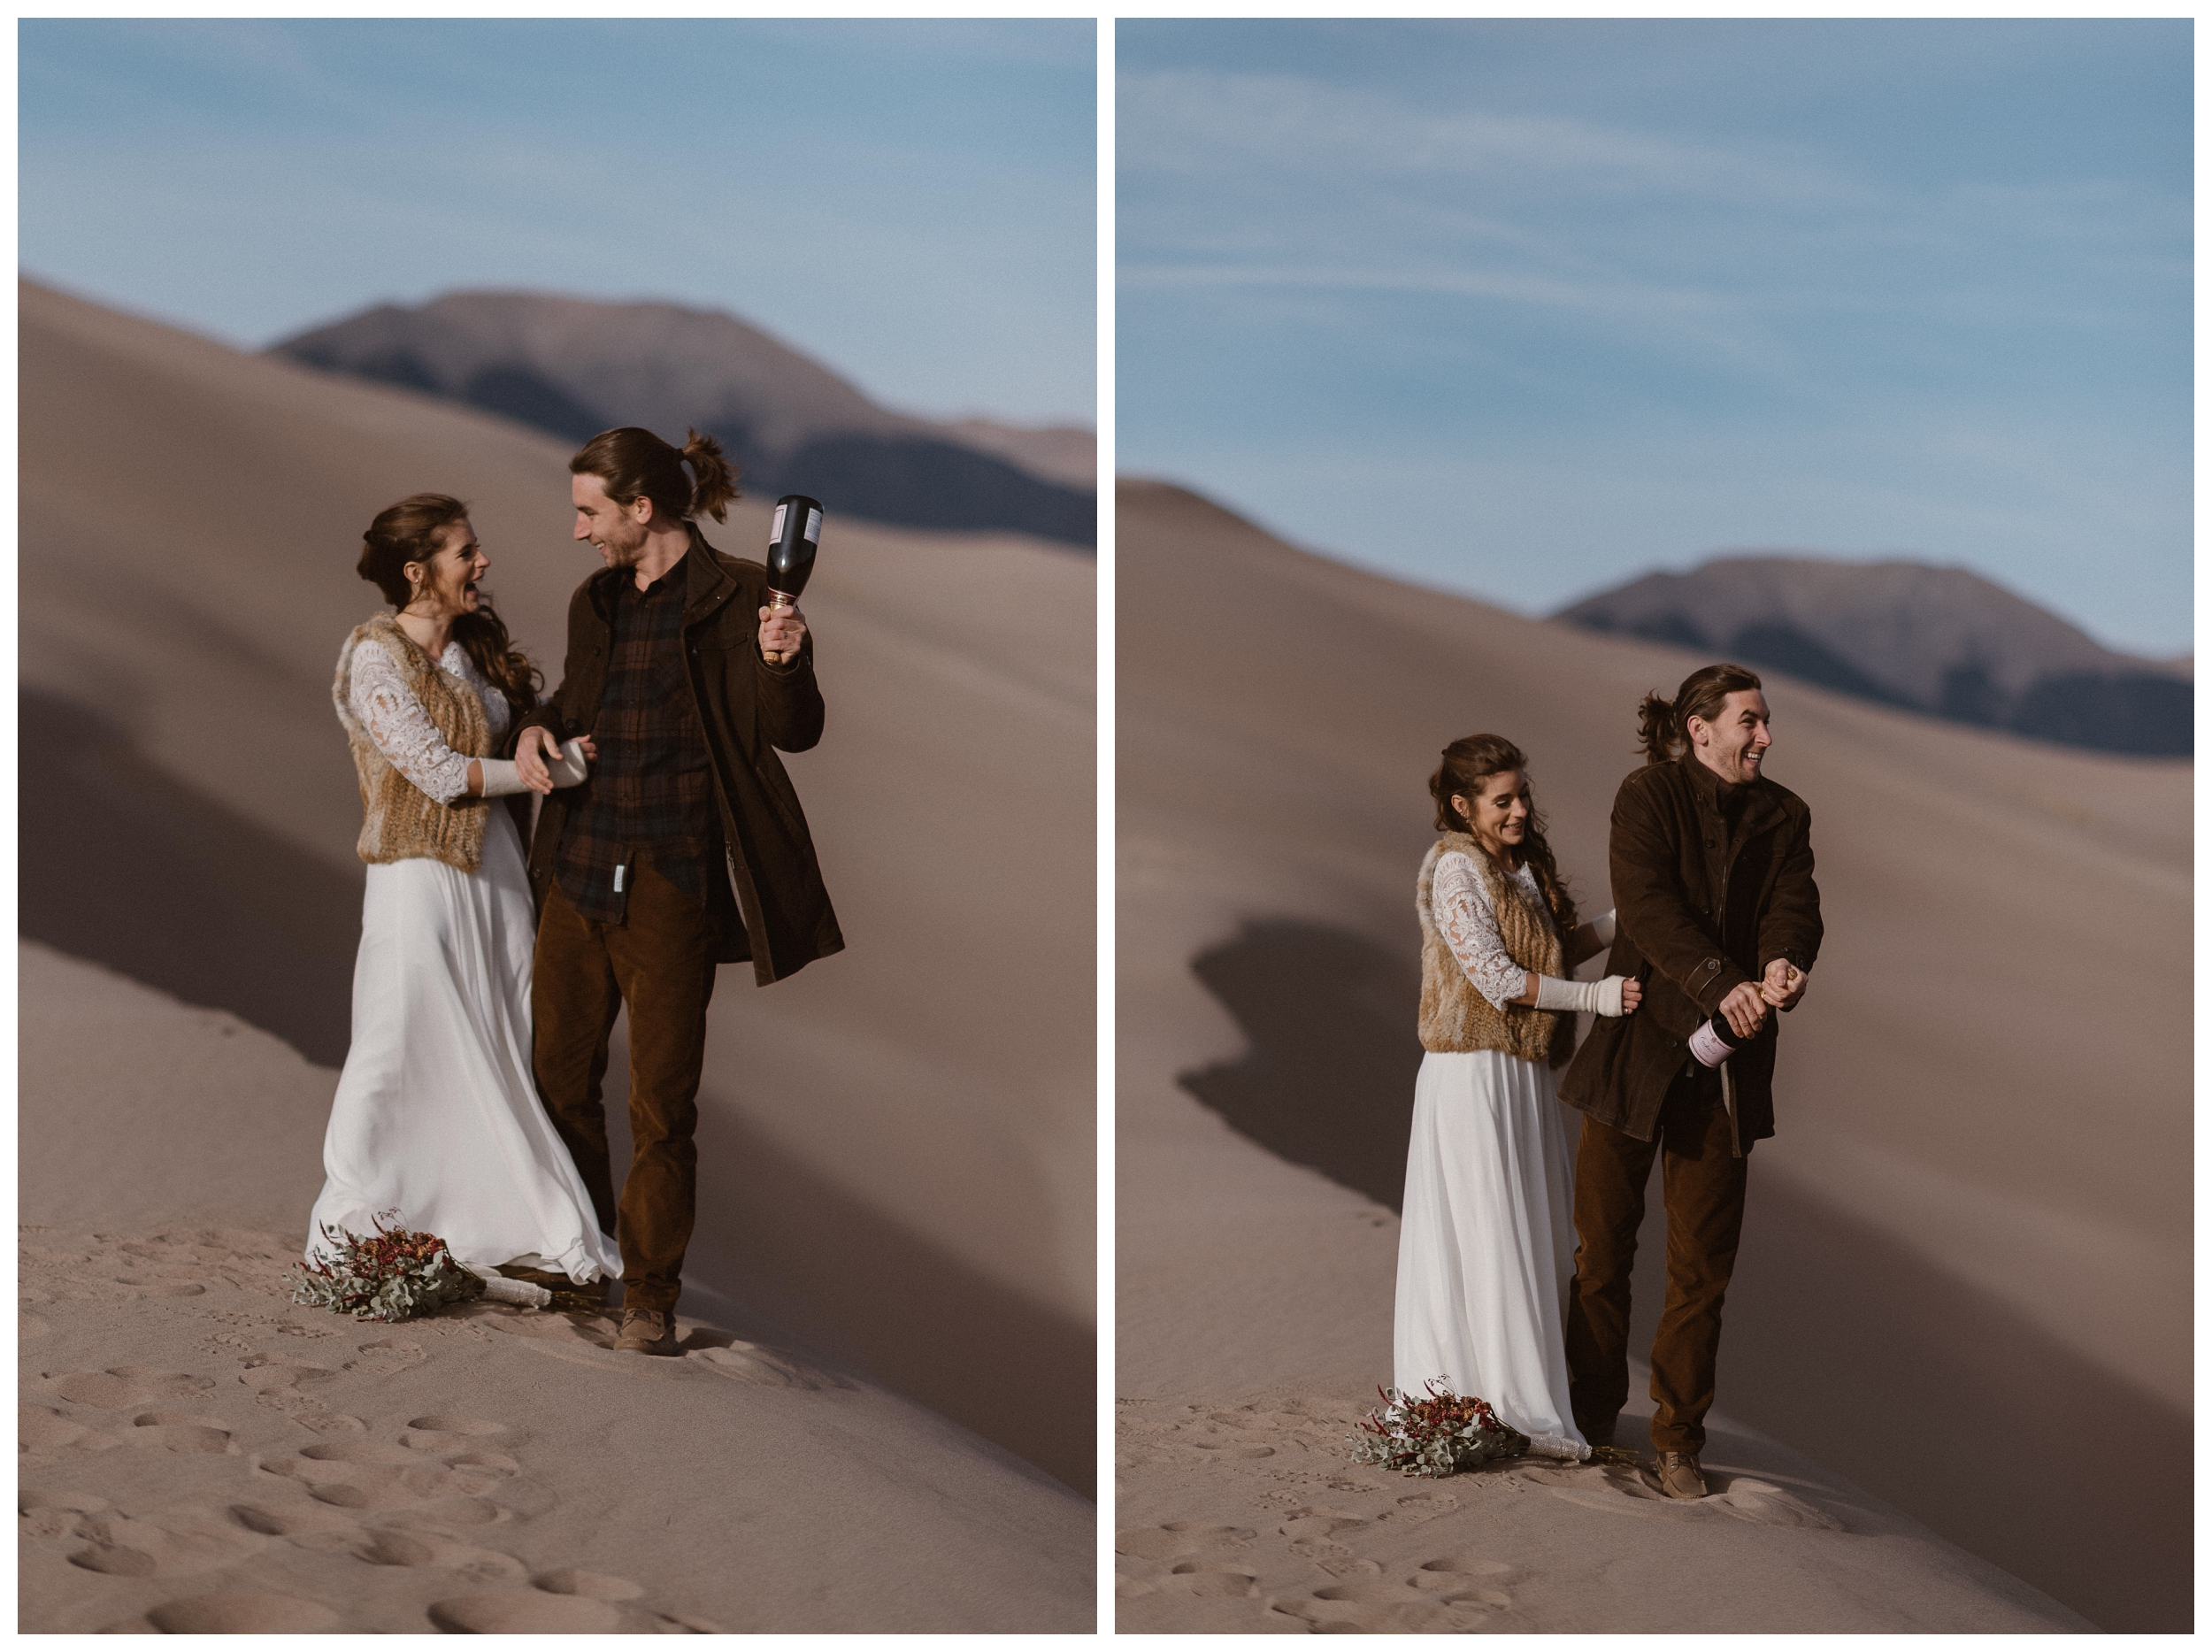 On top of the dunes at Great Sand Dunes National Park, Olivia and Justin celebrate saying their vows in an intimate ceremony by popping a bottle of champagne. Photo by Maddie Mae Photo, Adventures Instead.